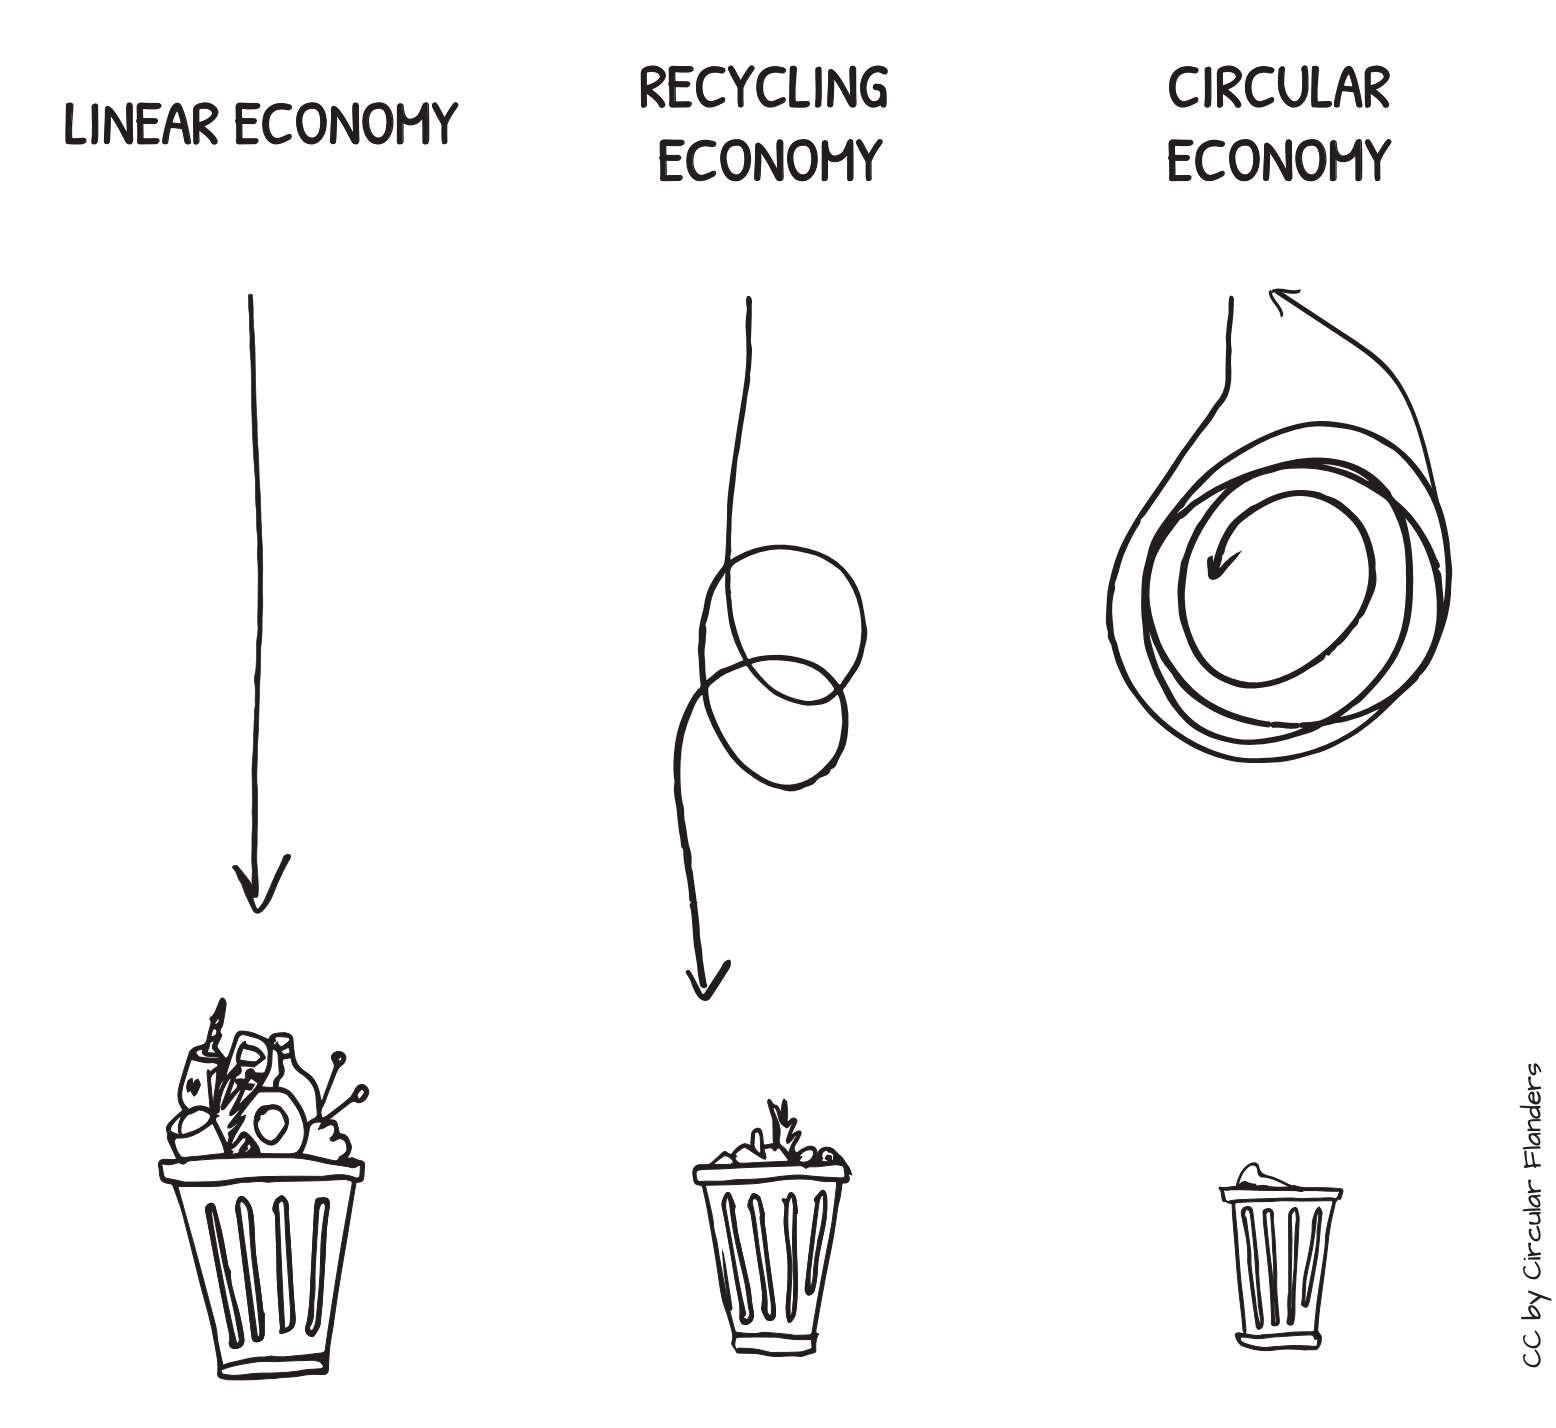 A sketch showing the difference between linear economy (where goods go to waste after one use), recycling economy (where goods get reused and then eventually go to waste) and circular economy (where goods cycle indefinitely without going to waste).